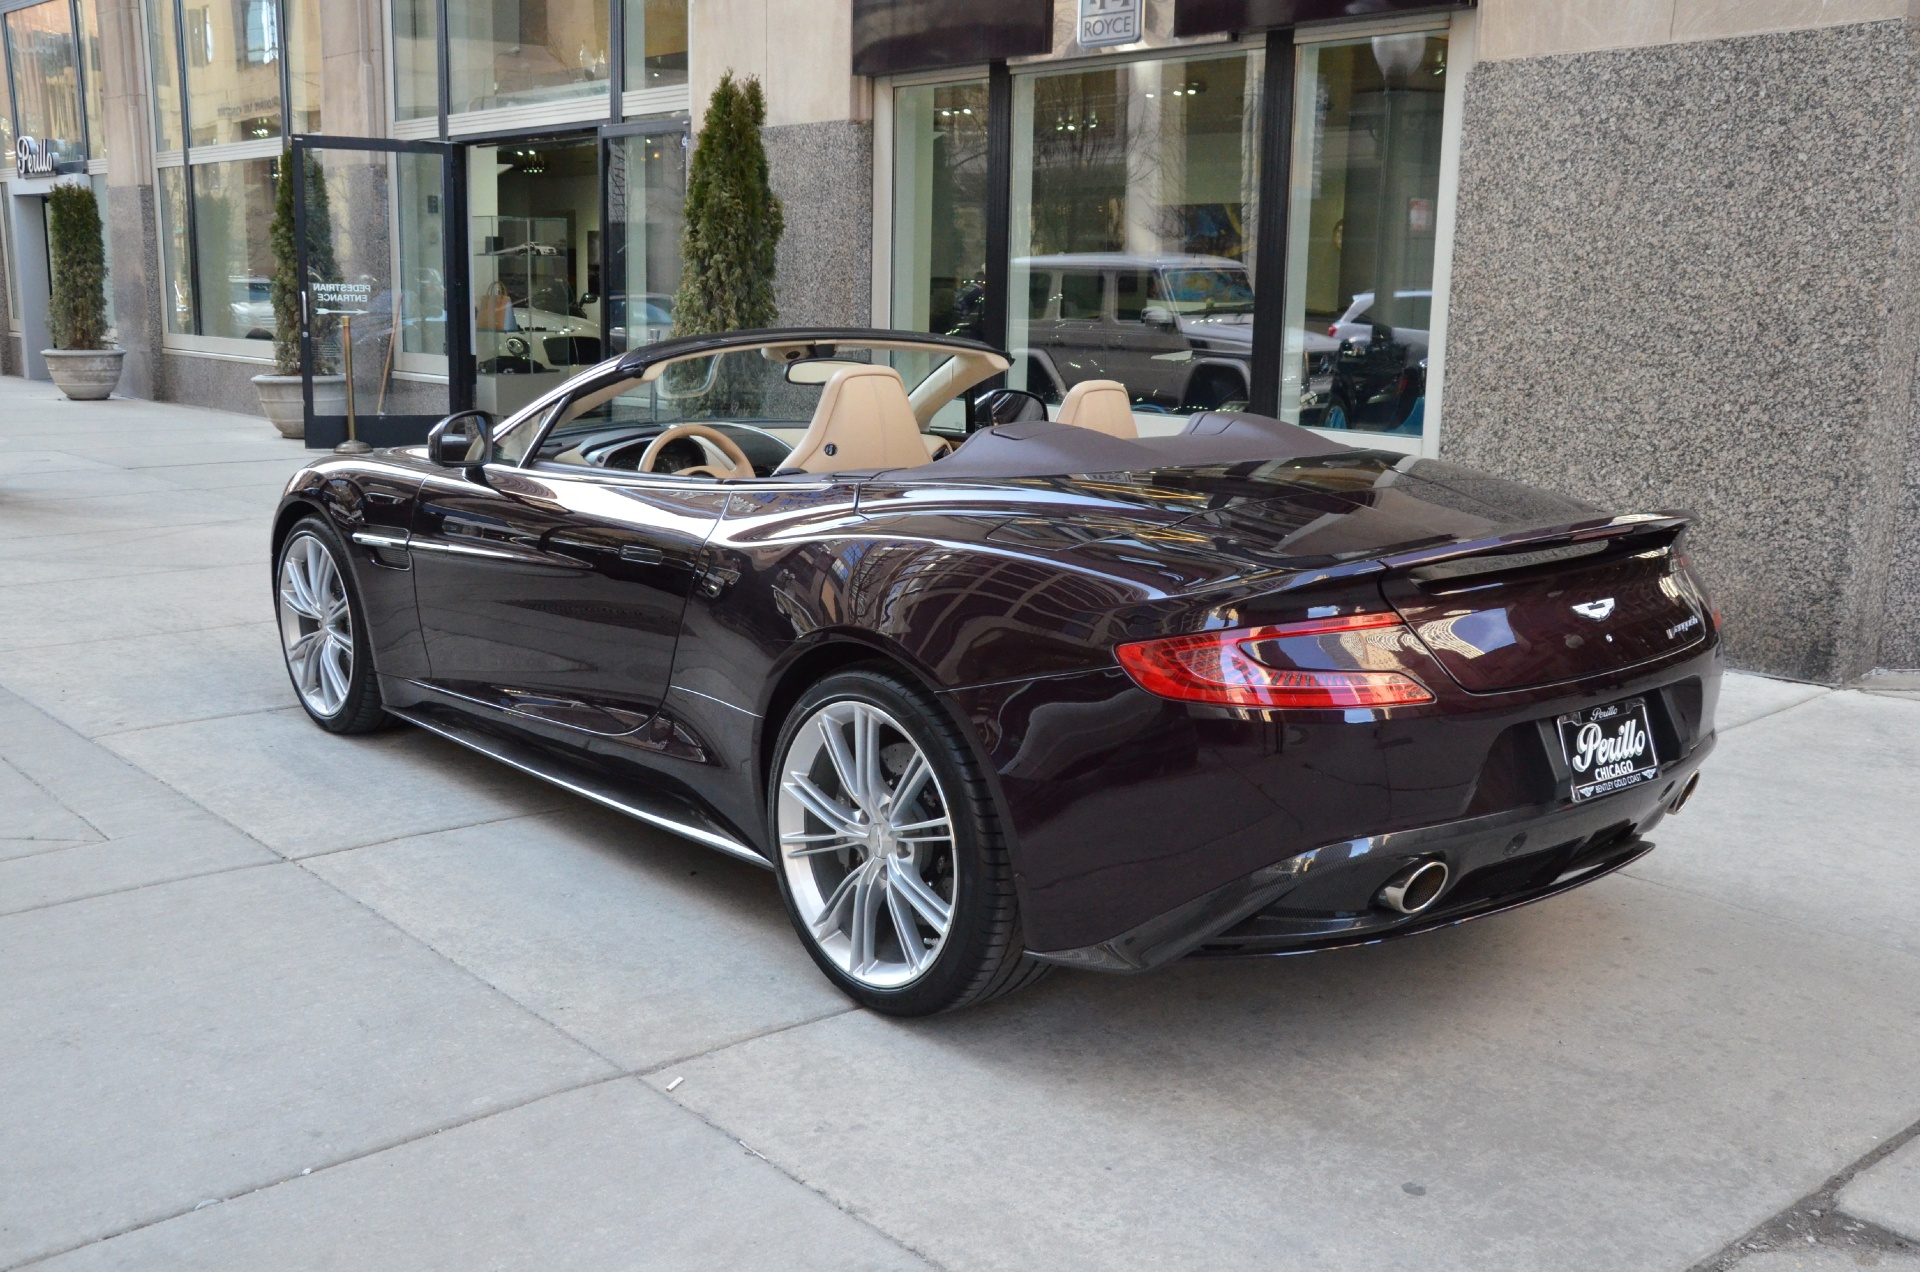 2014 aston martin vanquish convertible volante stock b611aa for sale near chicago il il. Black Bedroom Furniture Sets. Home Design Ideas